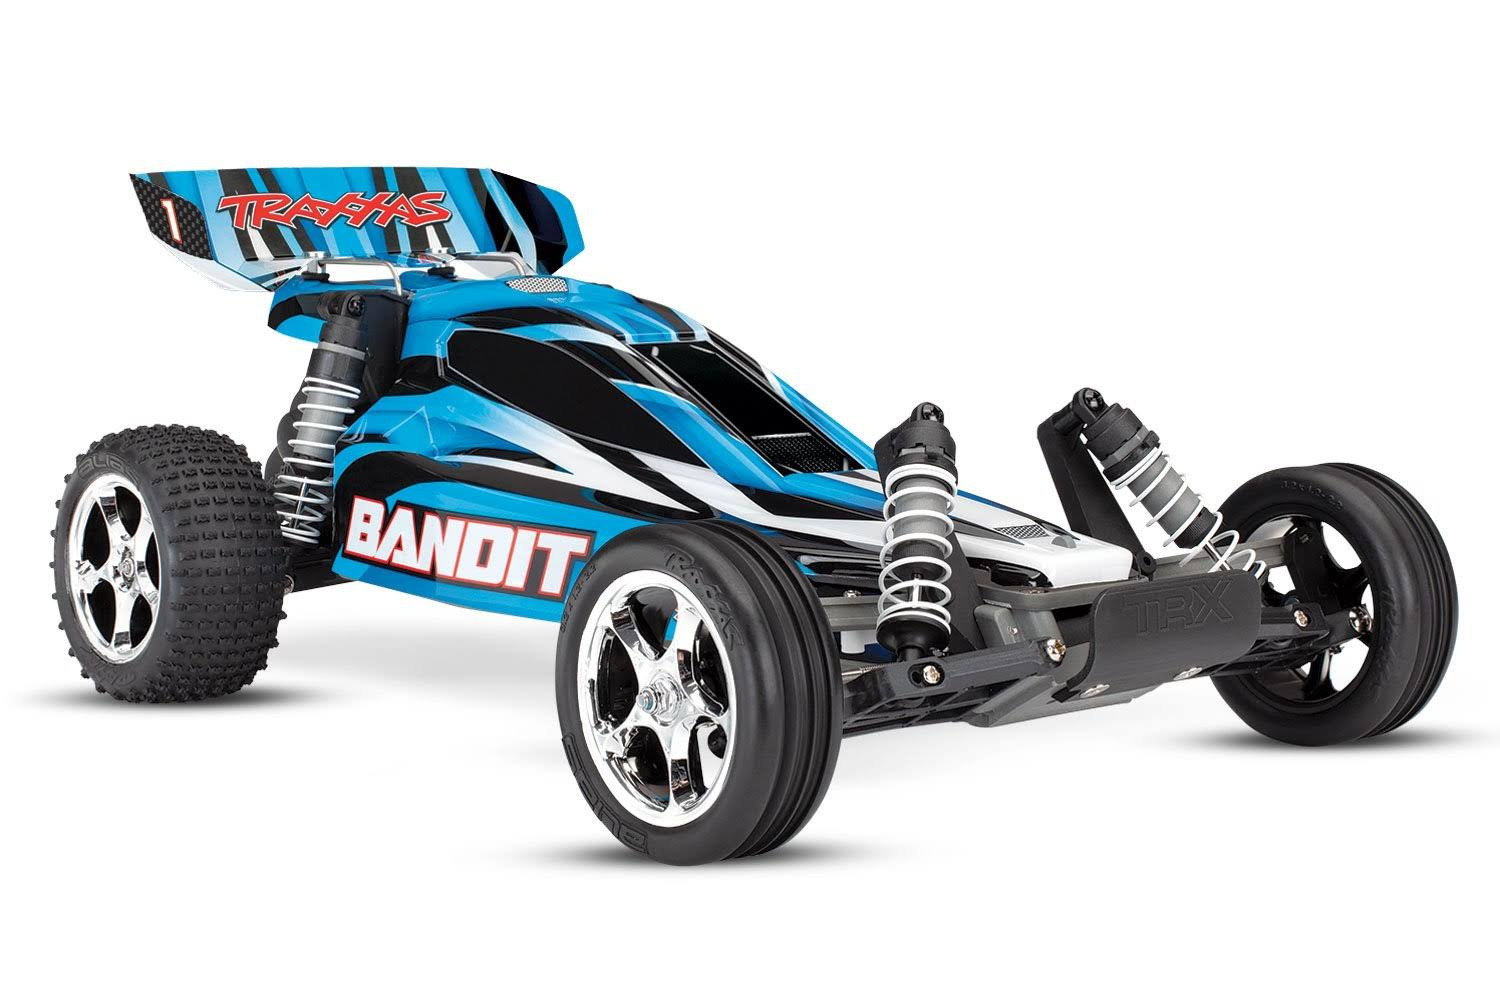 Traxxas Bandit: 1/10 Scale Off-Road Buggy. Blue